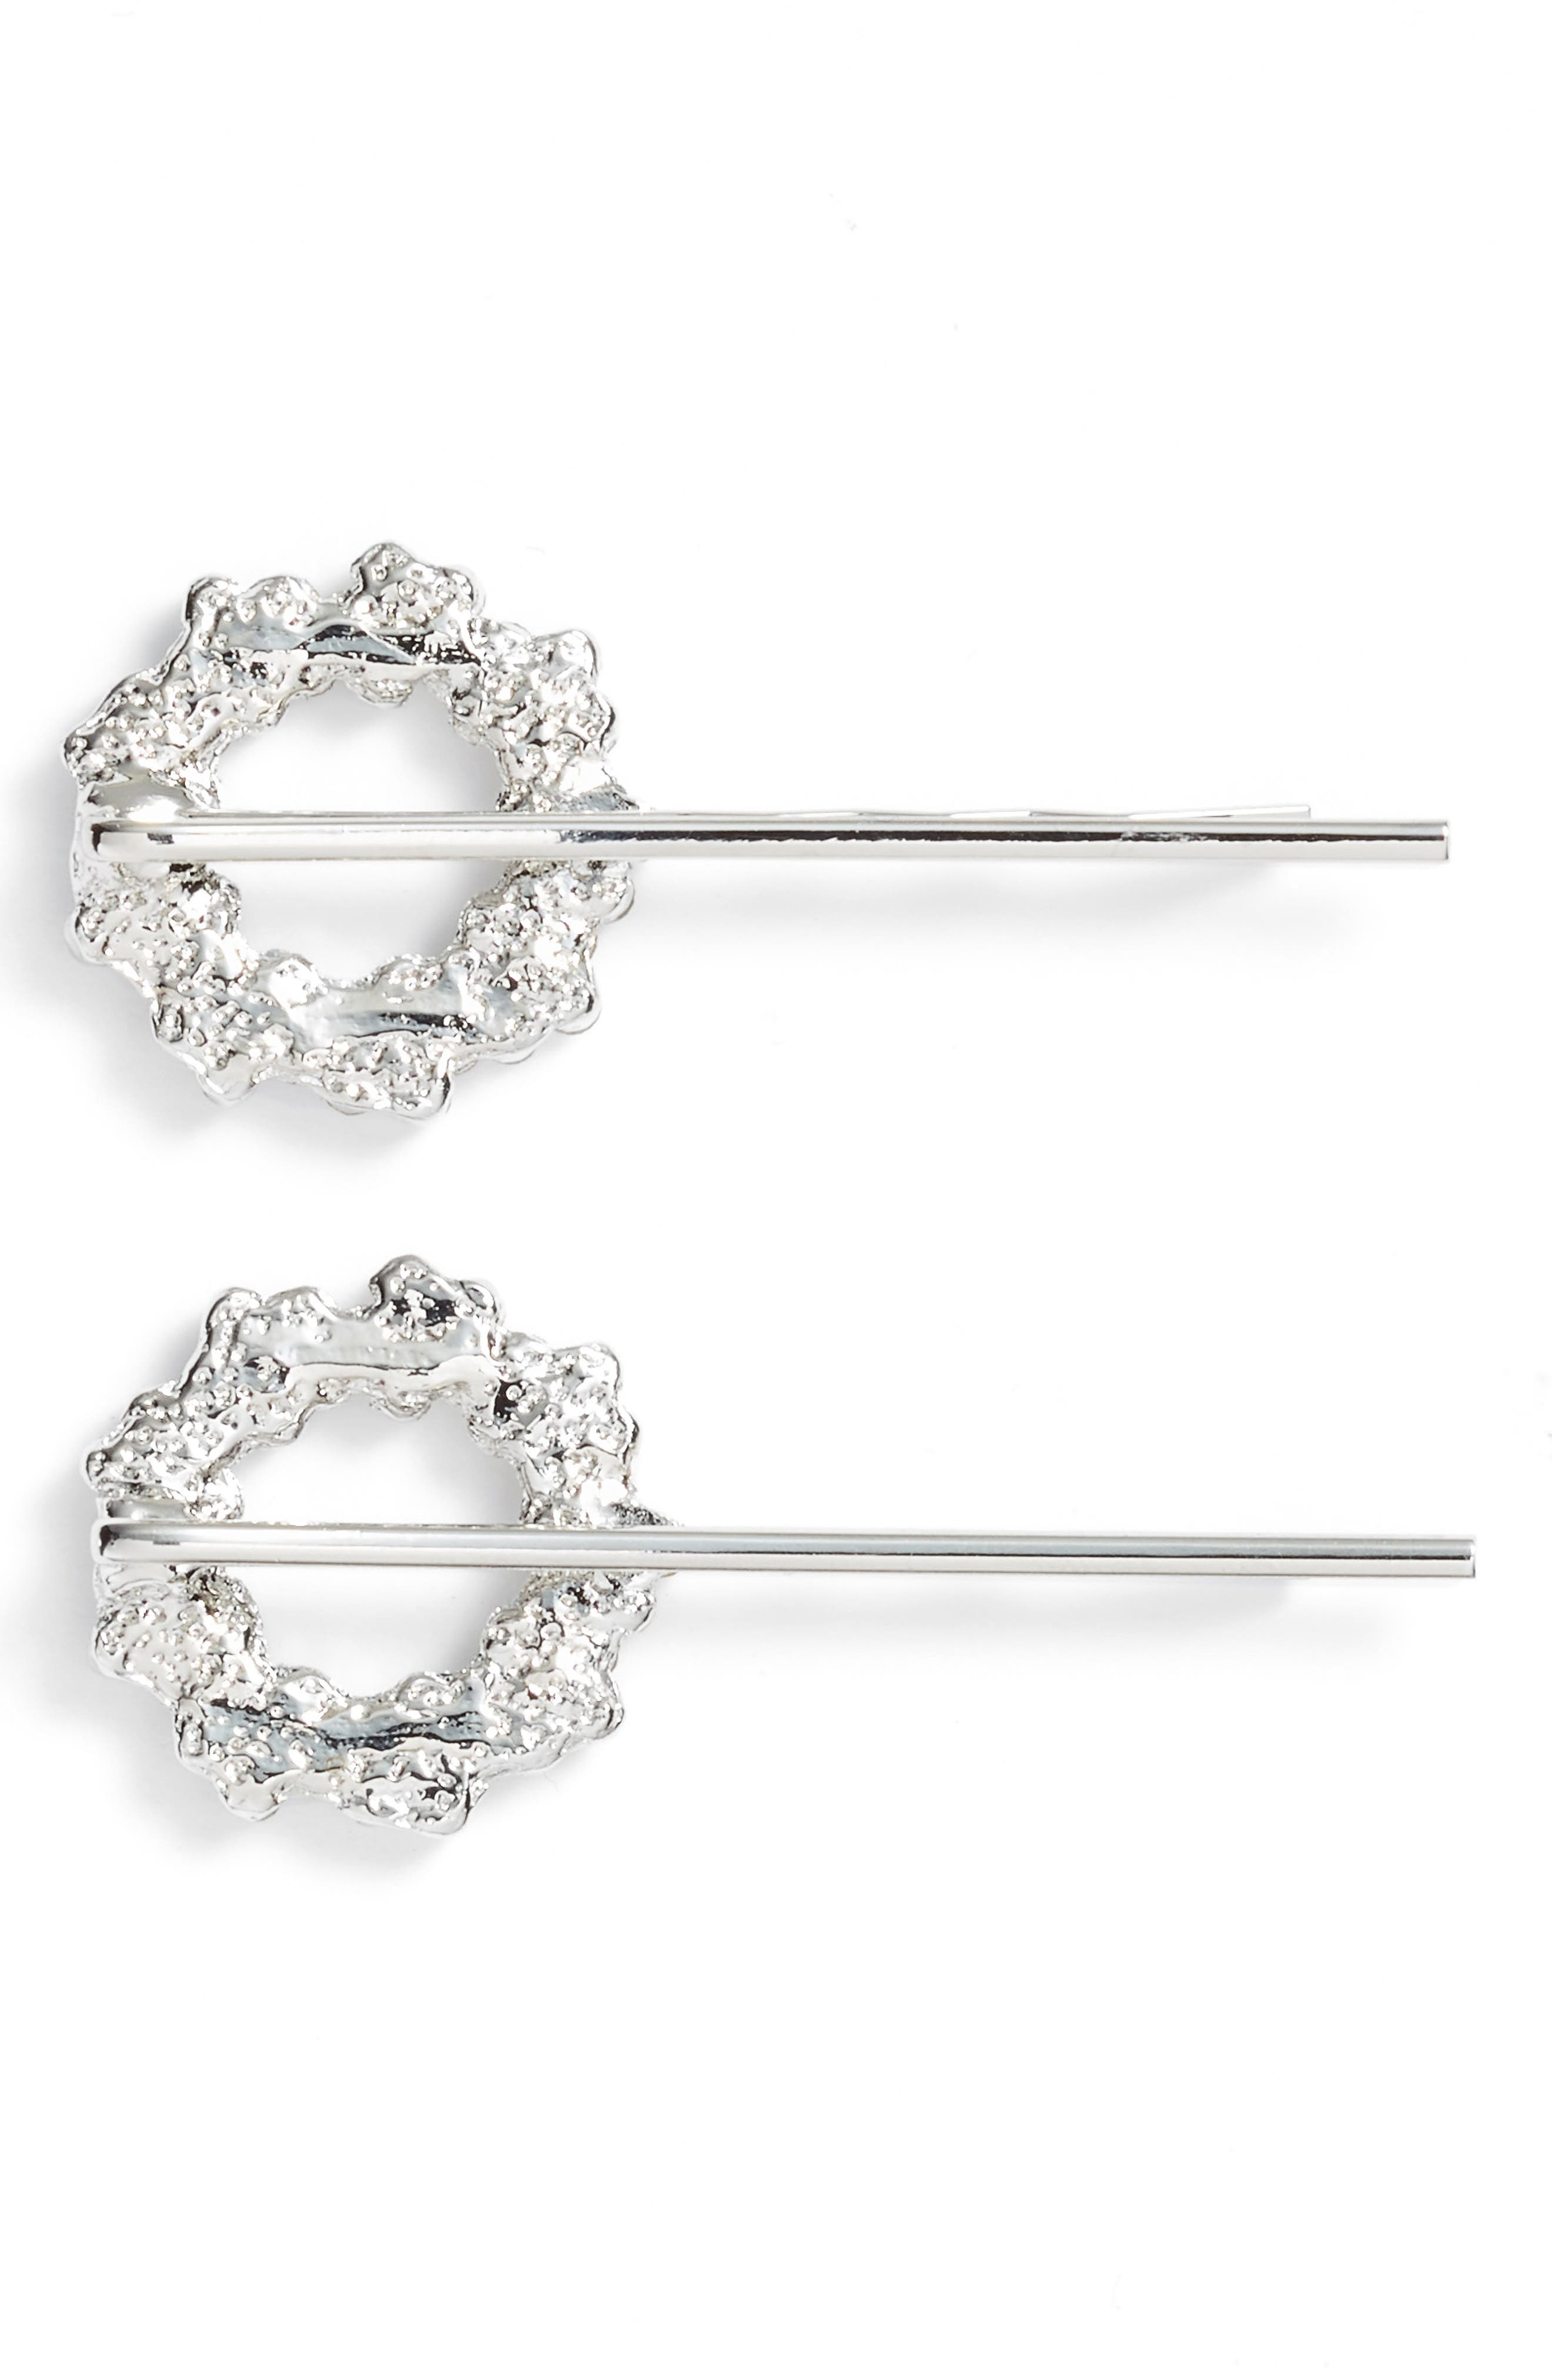 Set of 2 Crystal Flower Wreath Bobby Pins,                             Alternate thumbnail 2, color,                             Silver